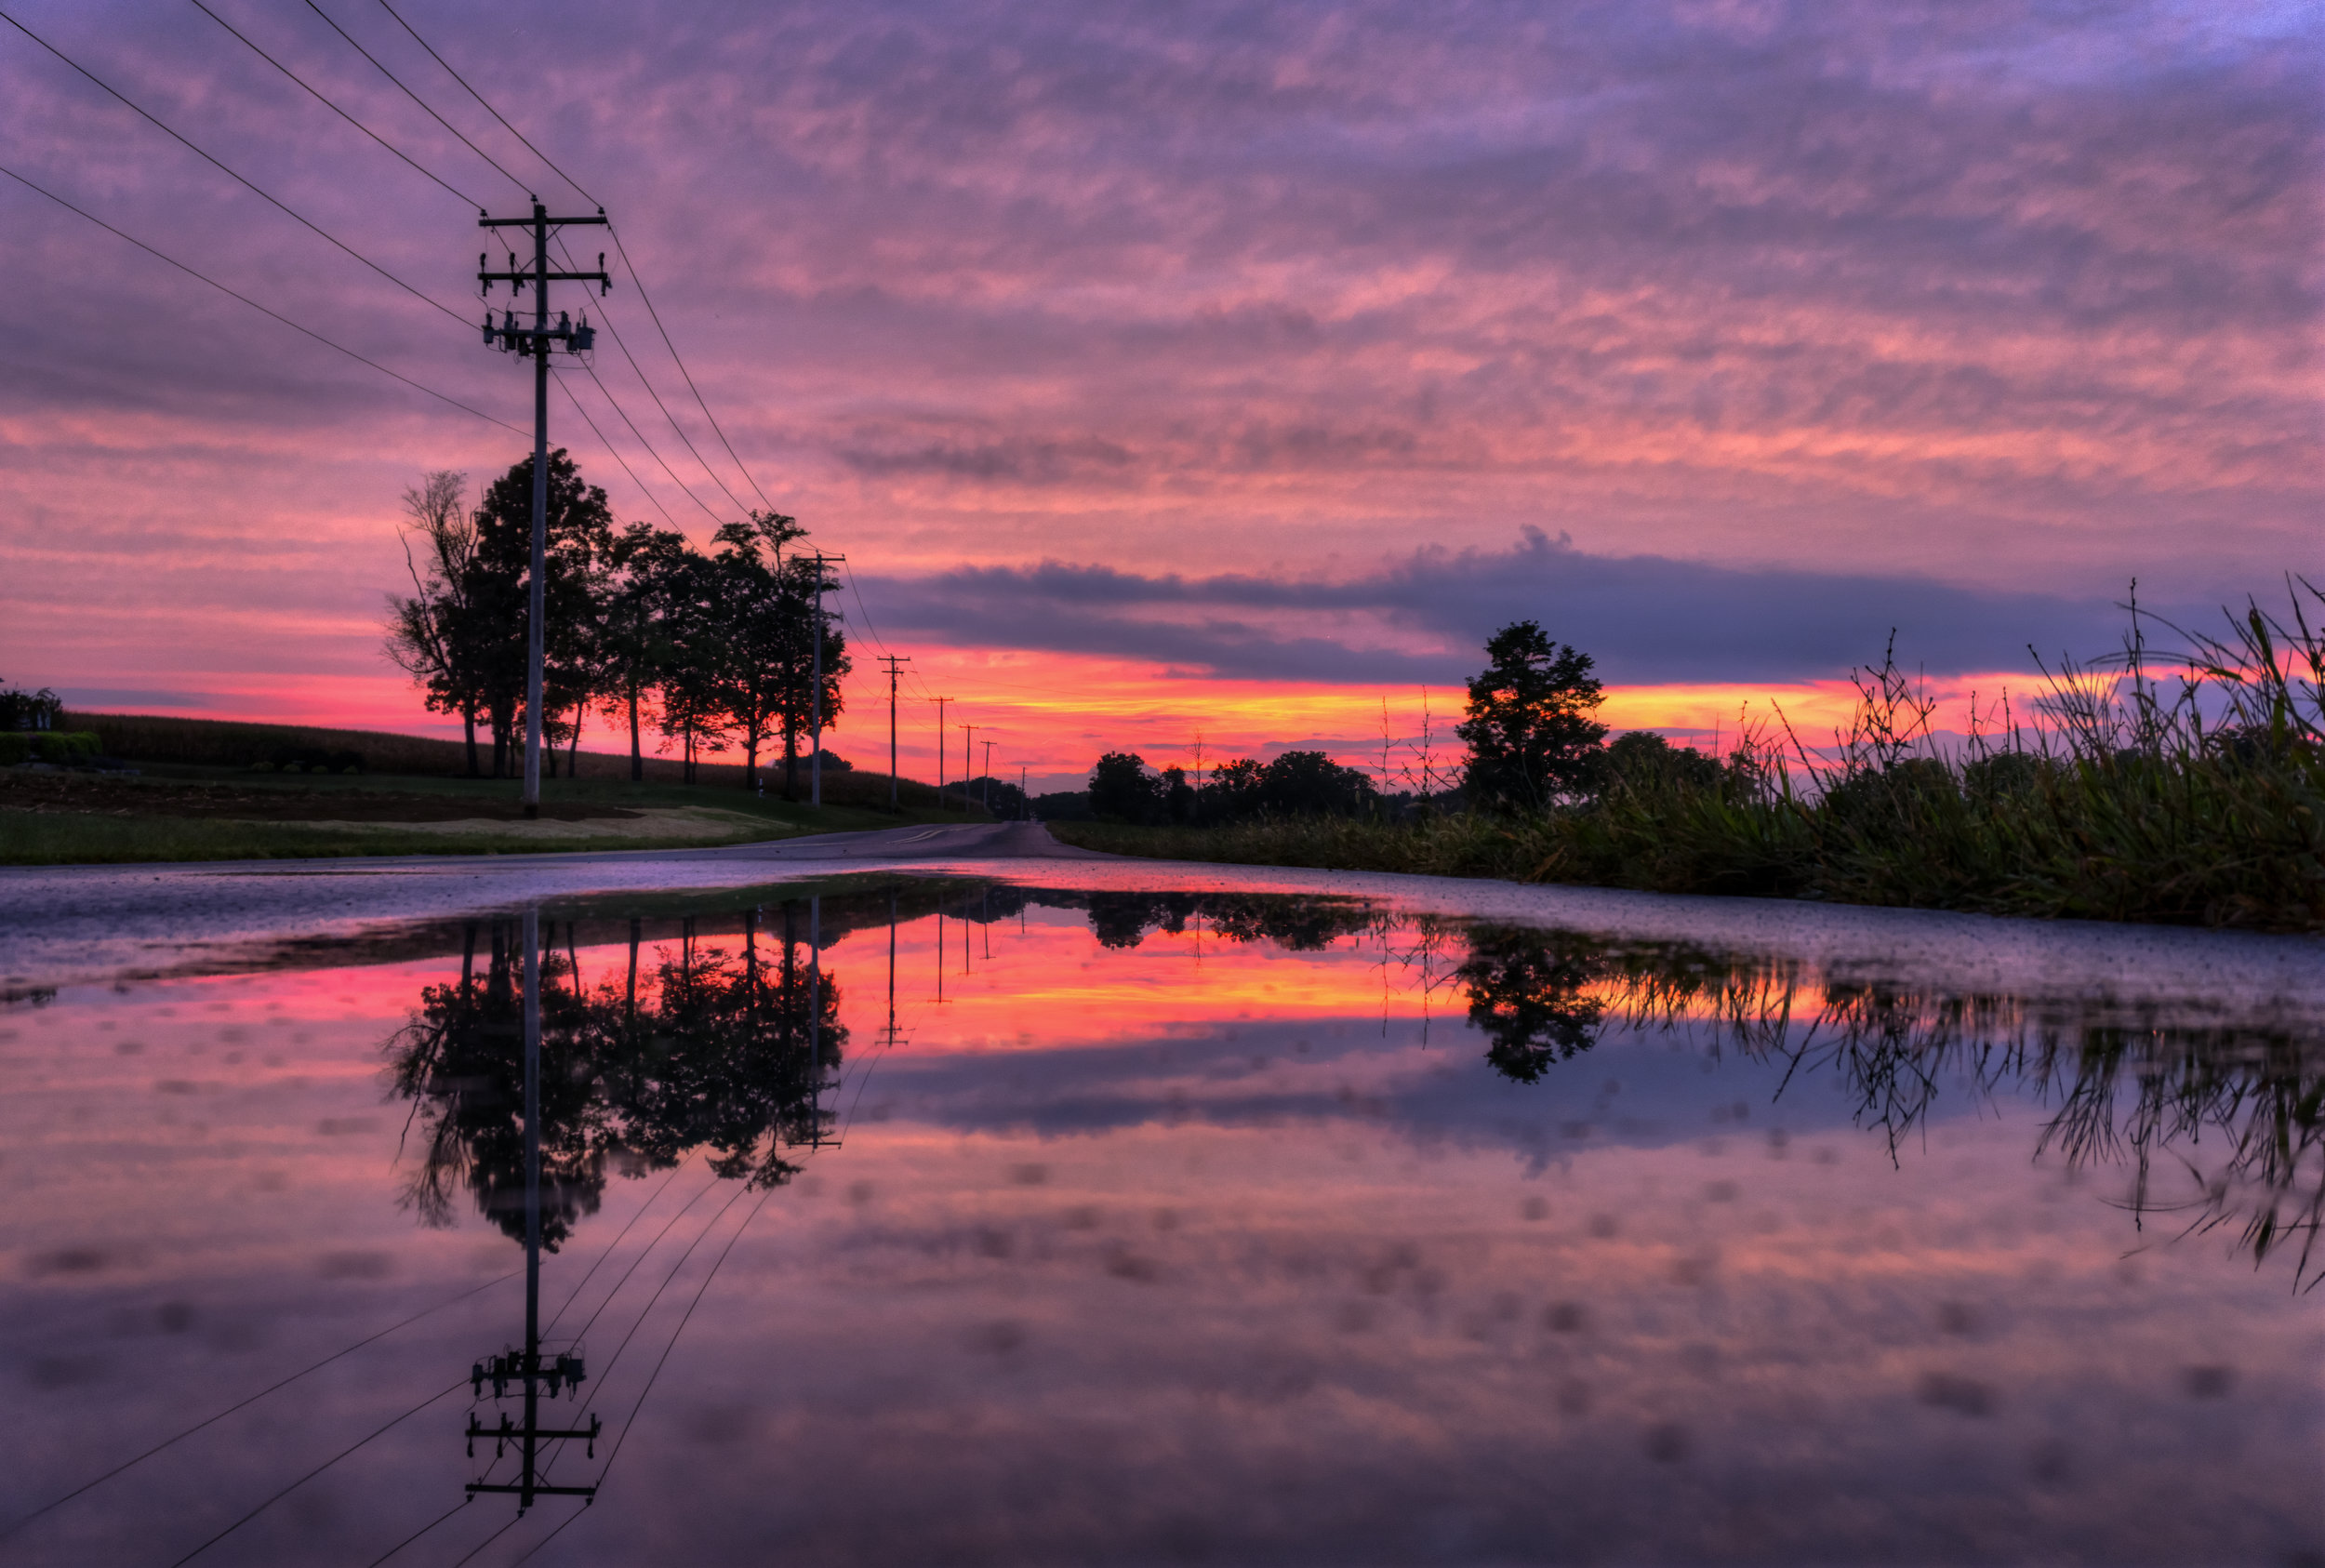 Sunset reflecting in the puddles on Saw Mill Rd. near Farmersville